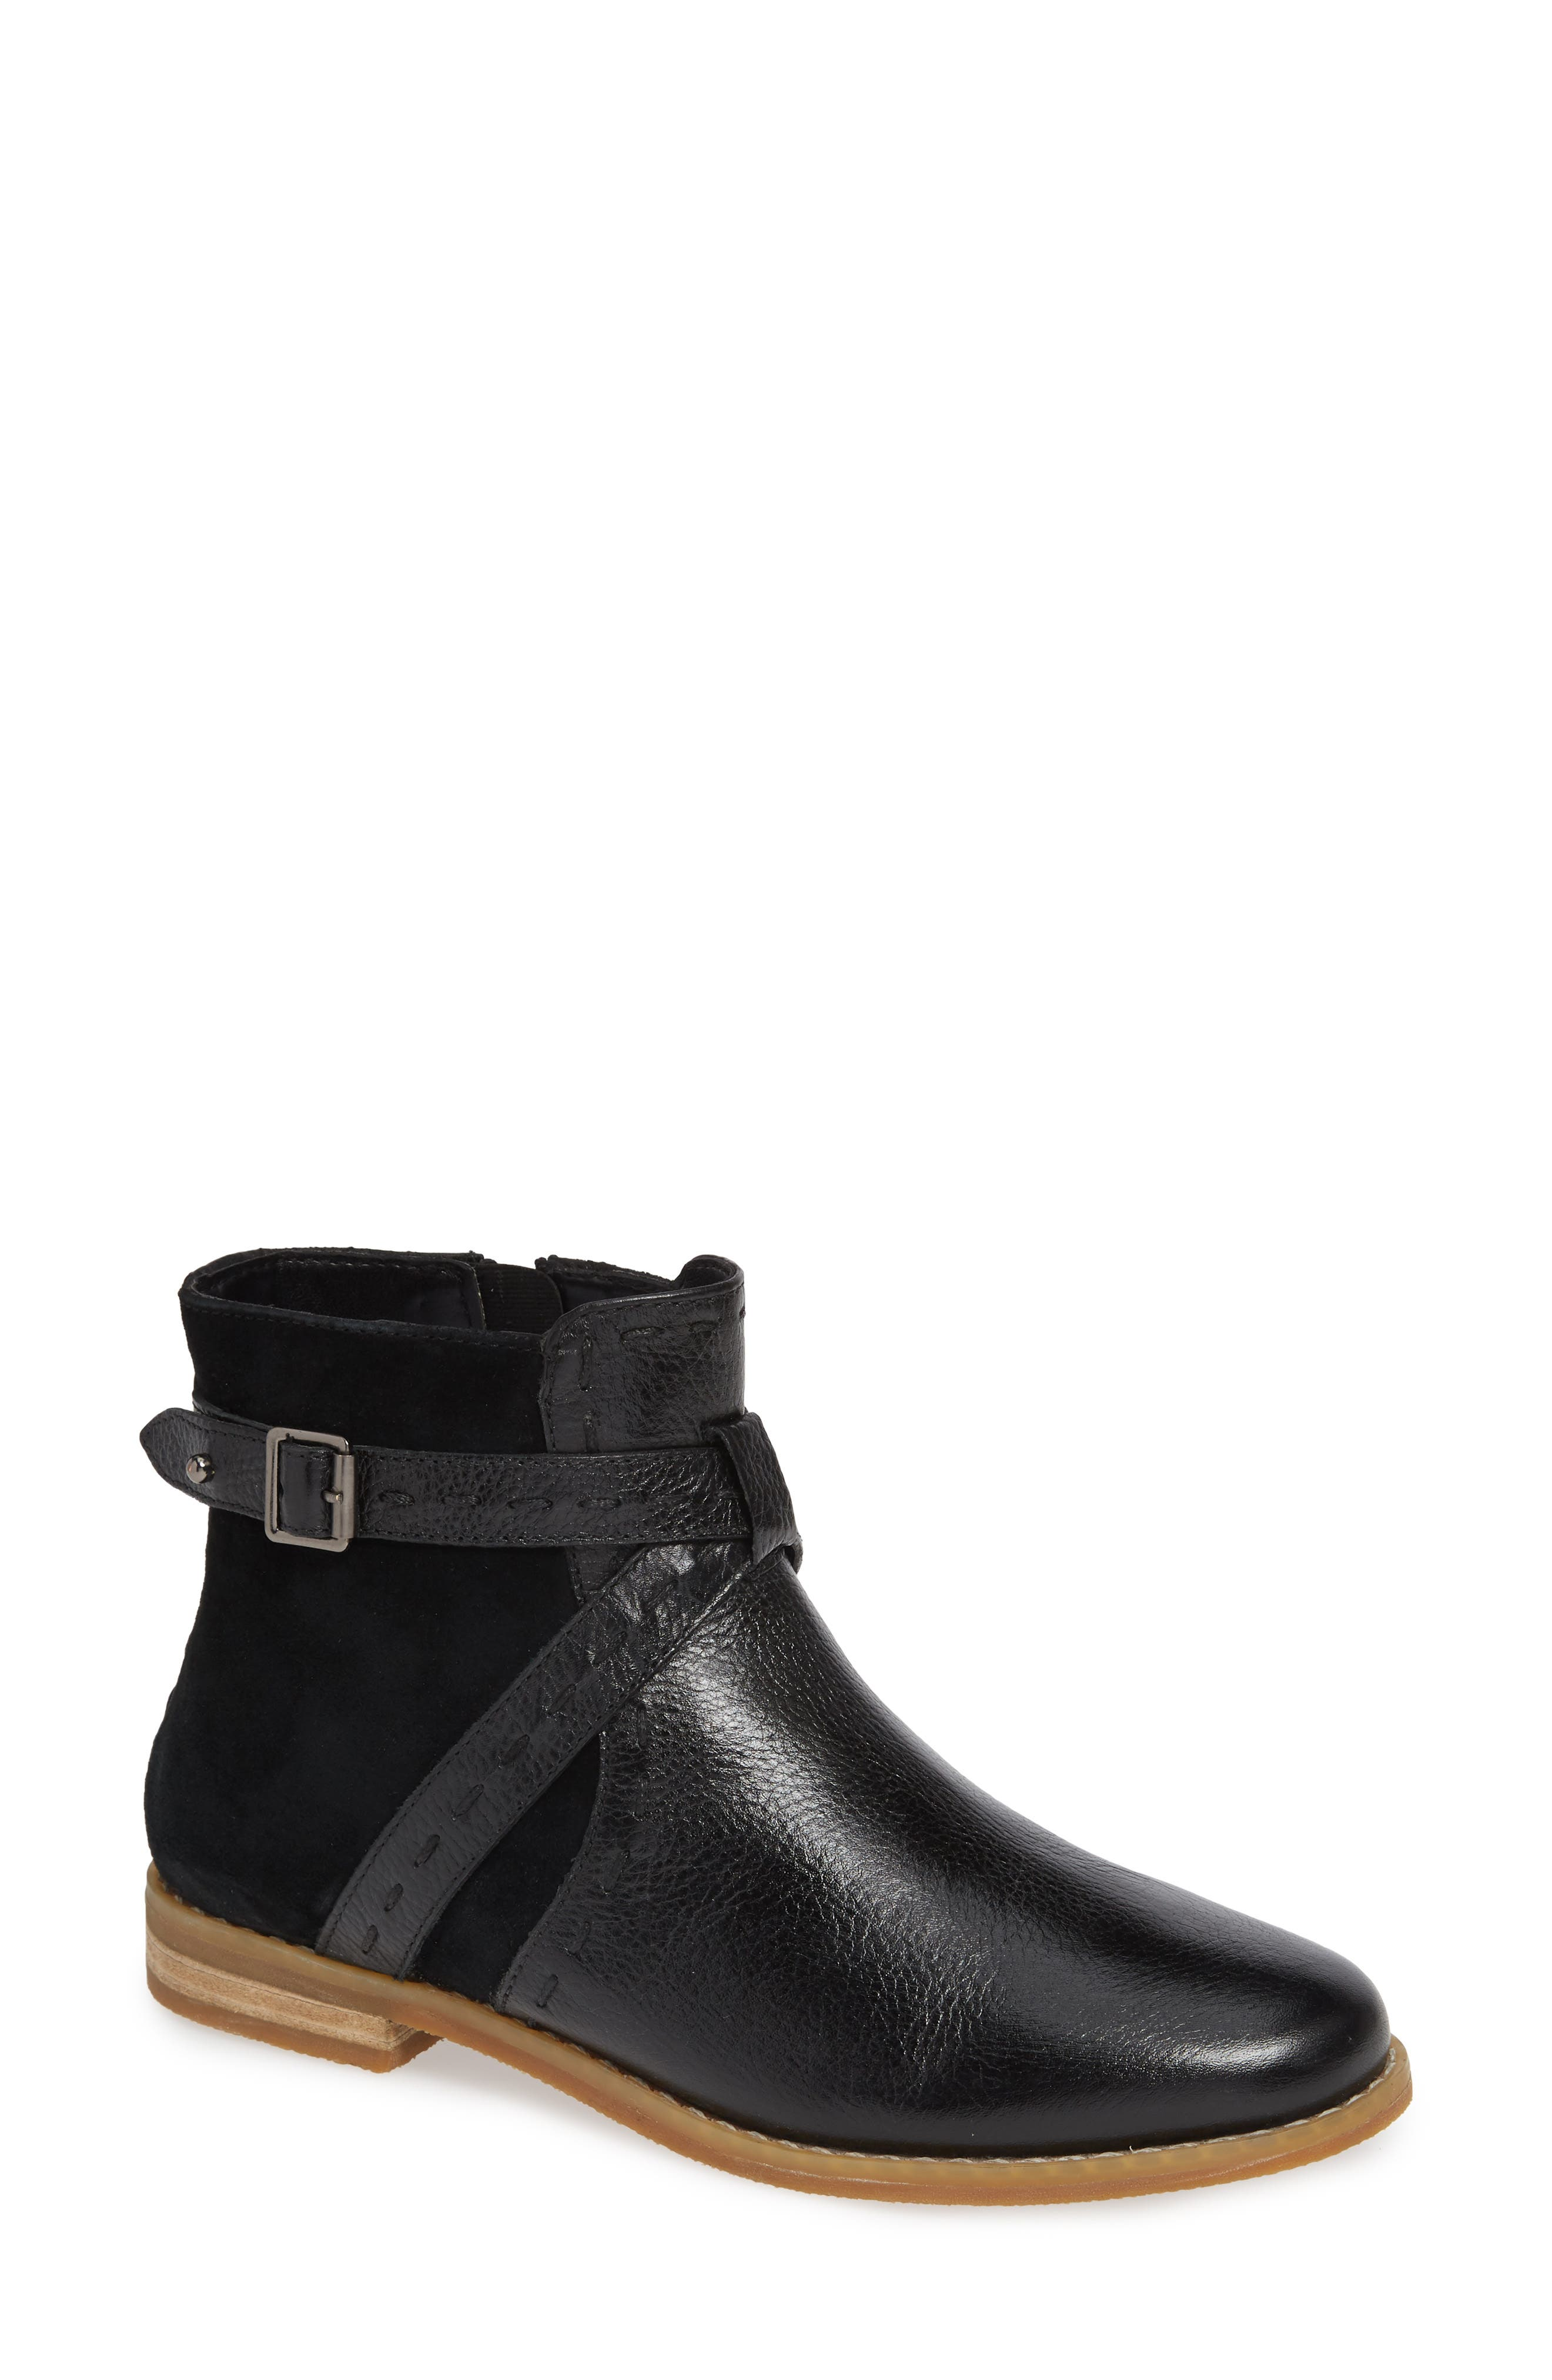 Hush Puppies Chardon Belt Water Resistant Bootie- Black